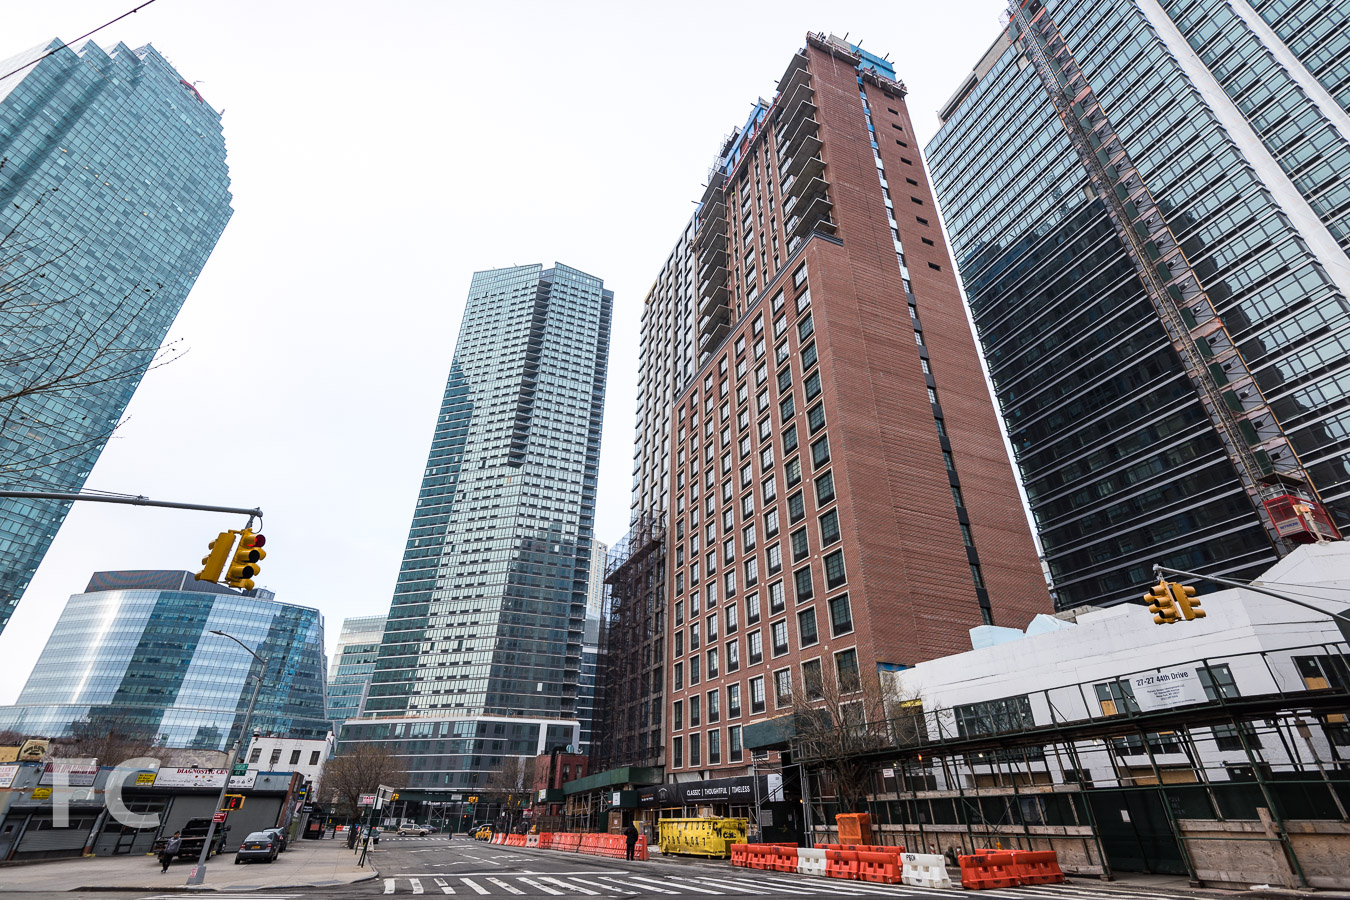 Looking north from the intersection of 44th Drive and Thomson Avenue with The Hayden (left), Watermark Court Square (center),The Edison (right), and 44-28 Purves Street (far right).